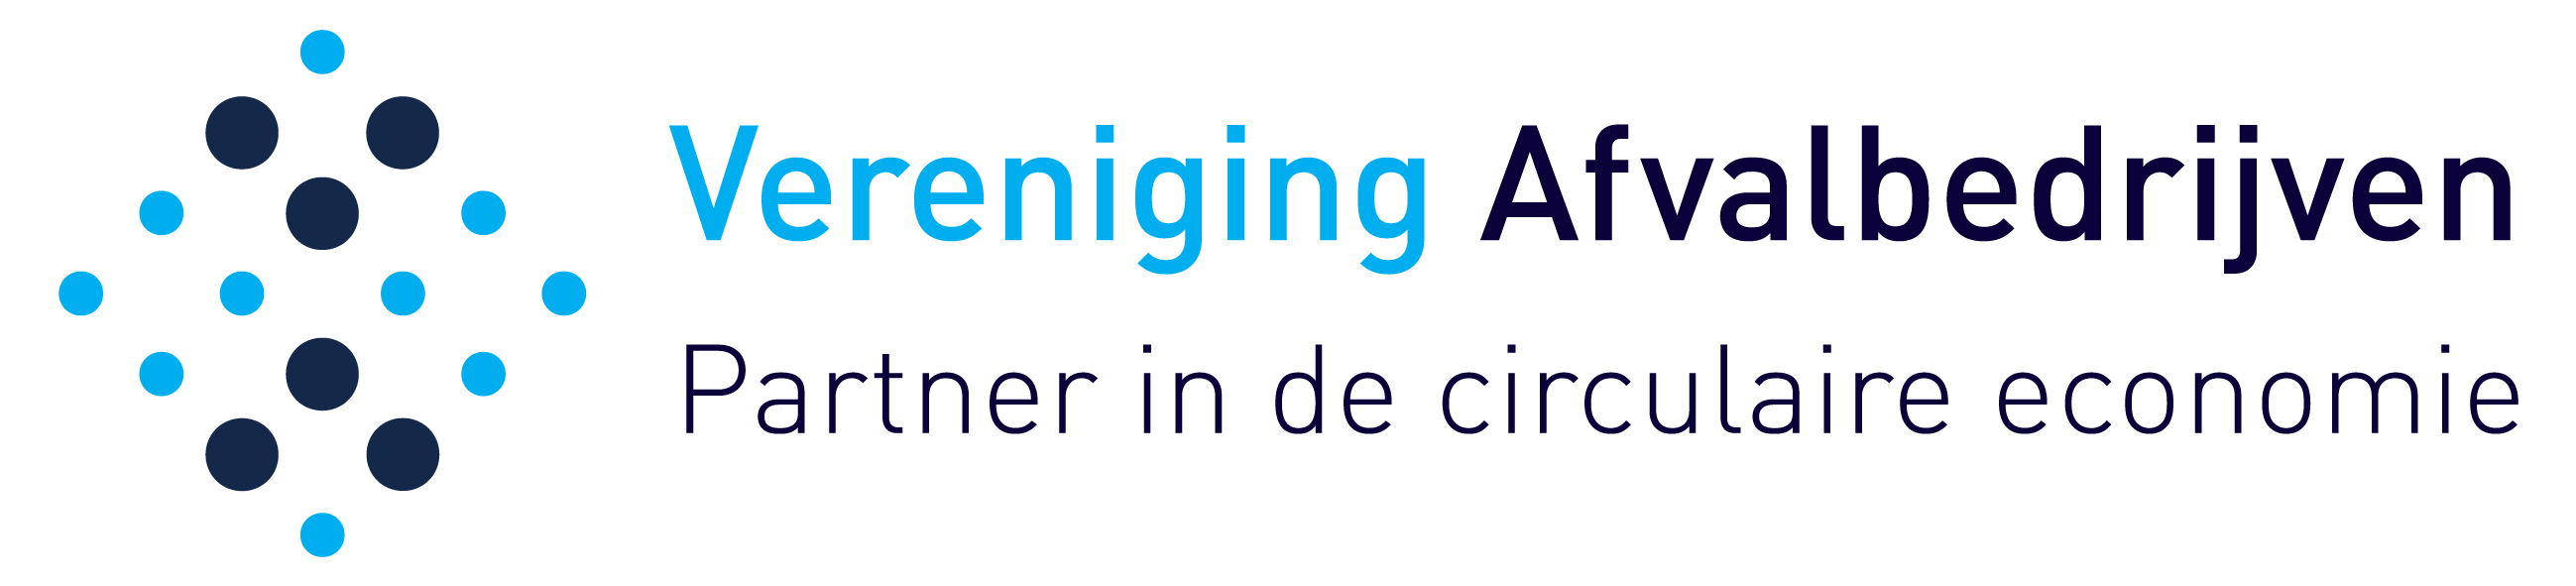 Vereniging Afvalbedrijven / Dutch Waste Management Association